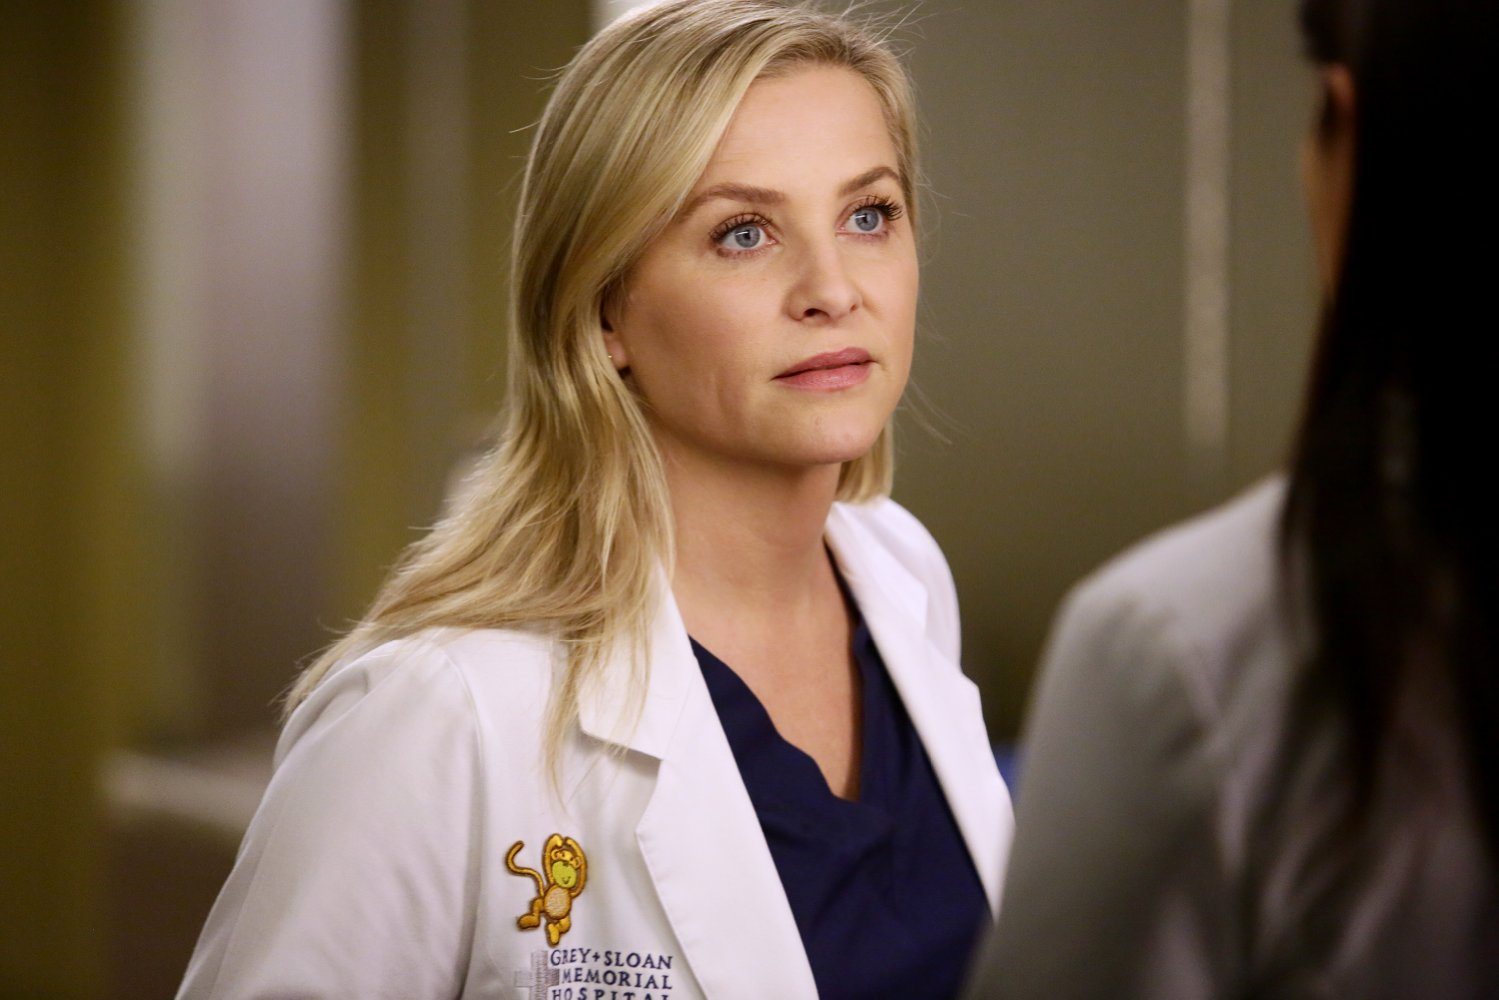 Arizona Robbins on Grey's Anatomy